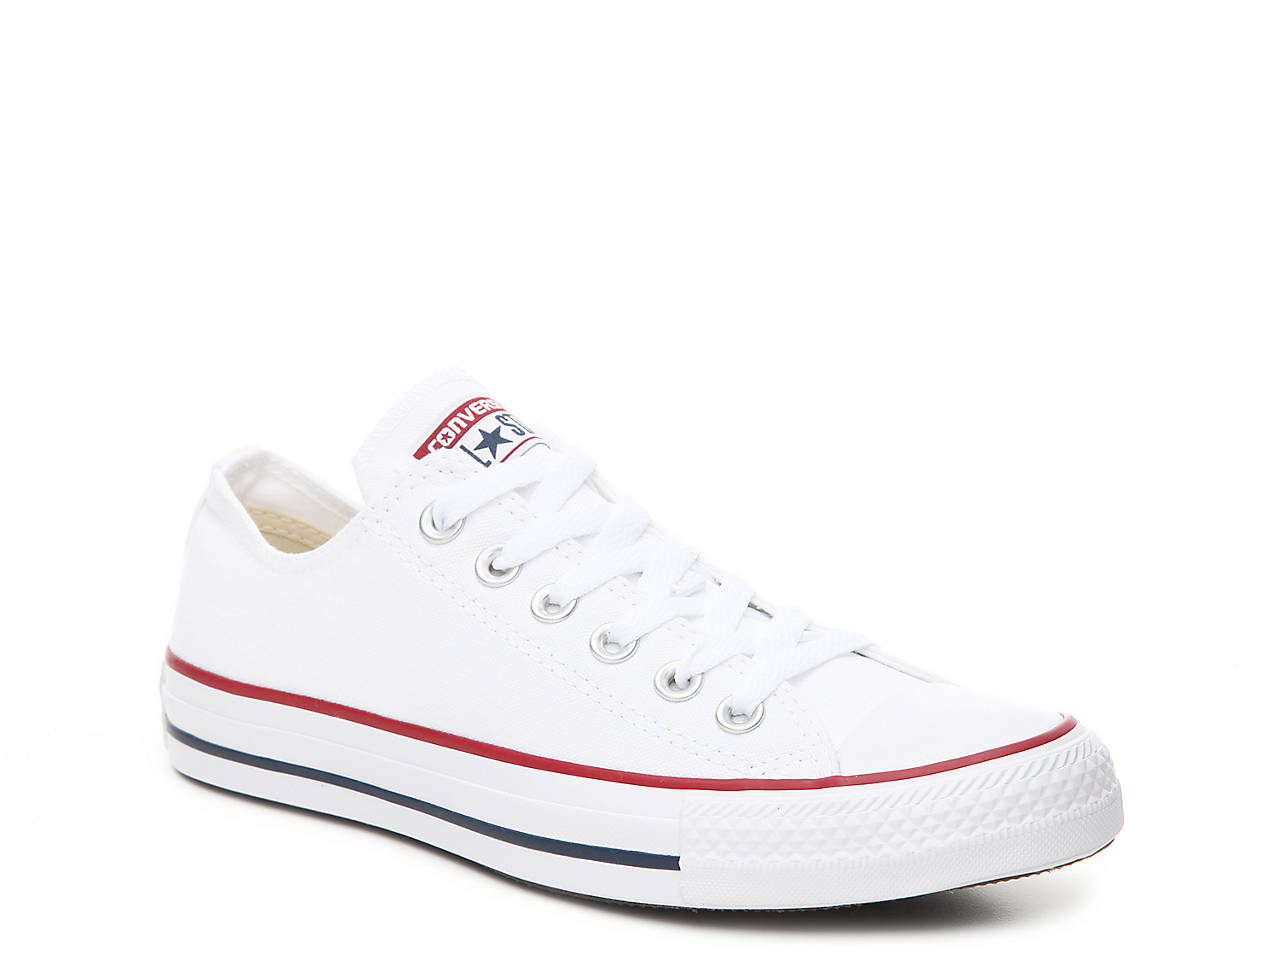 392add6463b640 Converse Chuck Taylor All Star Sneaker - Women s Women s Shoes